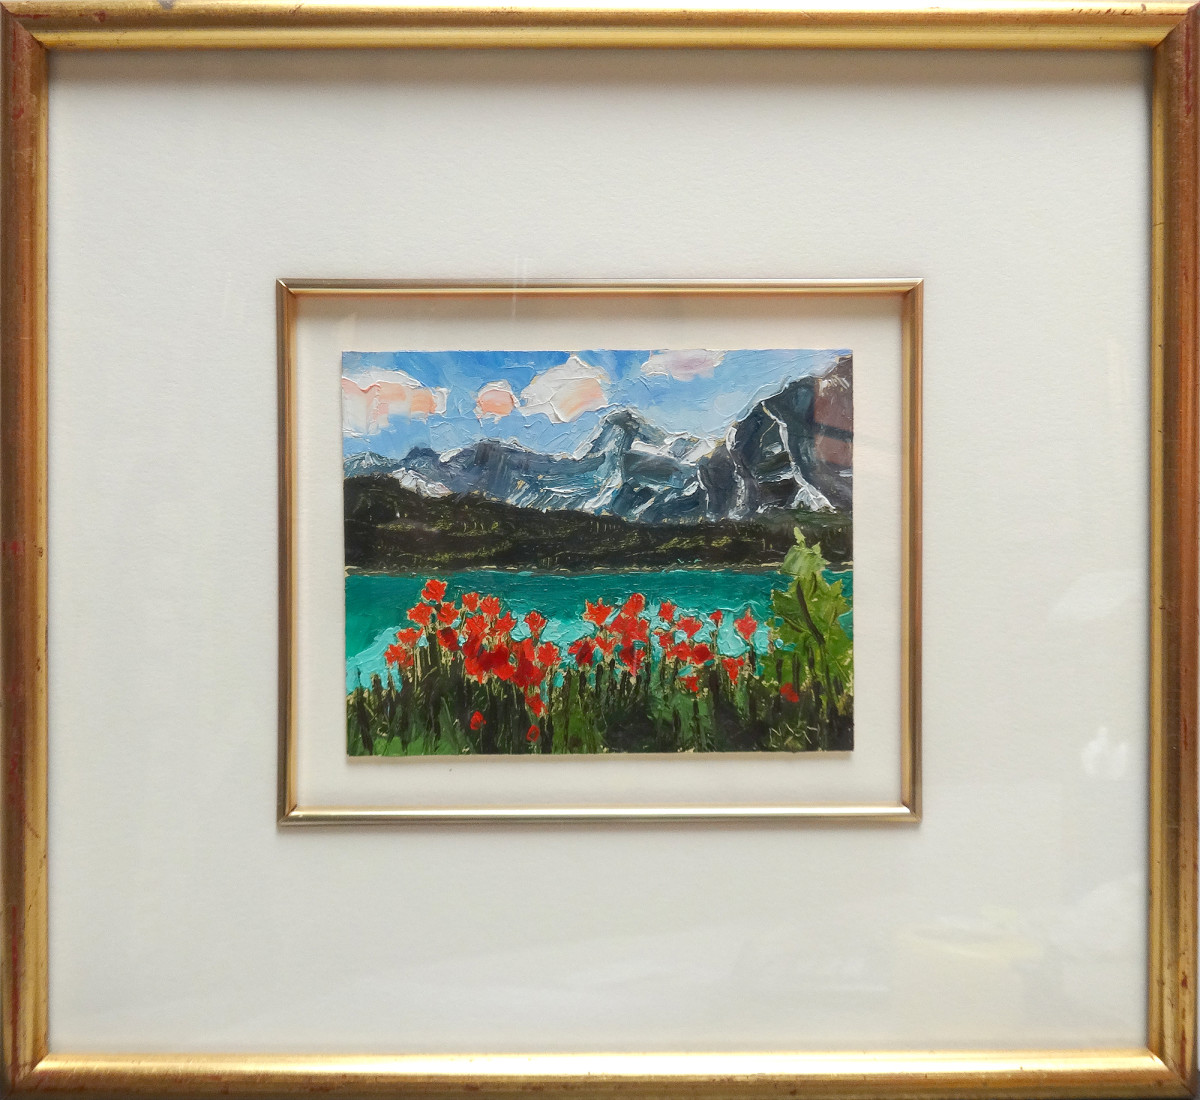 2985 - Mountain, Lake and Flowers